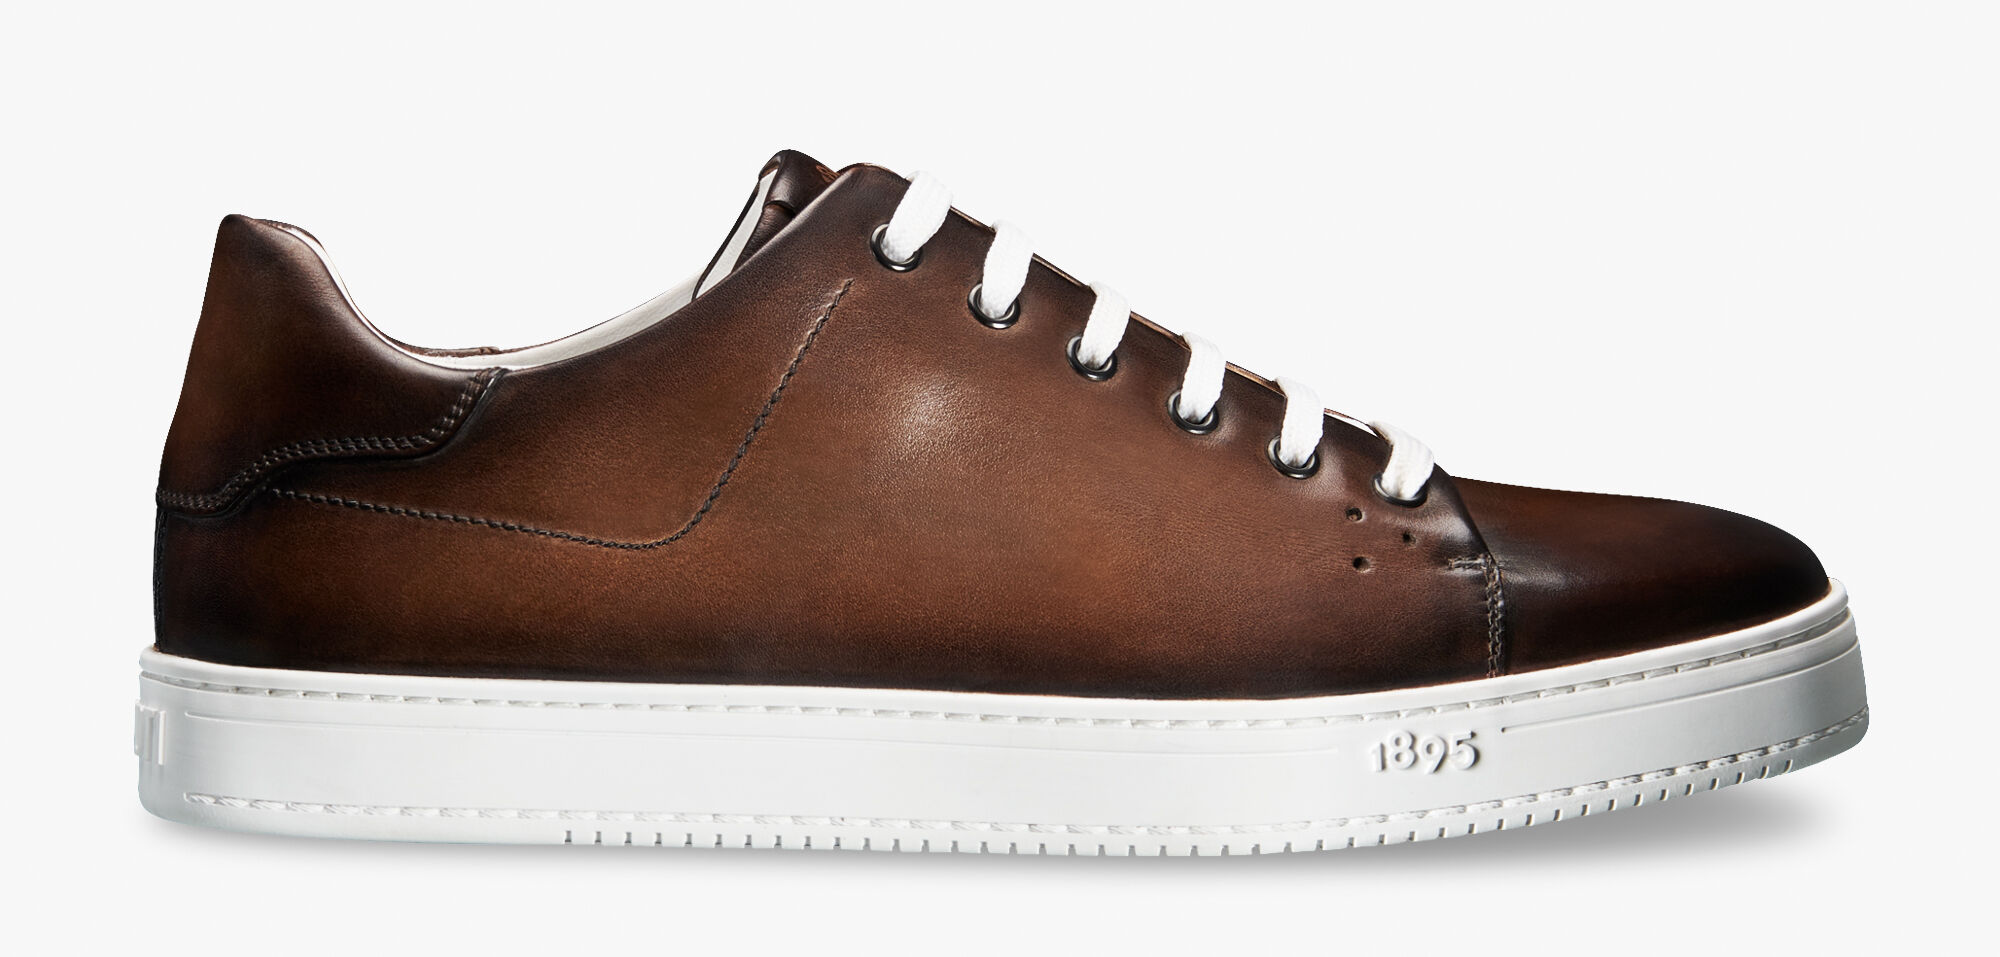 Sneaker collections by Berluti